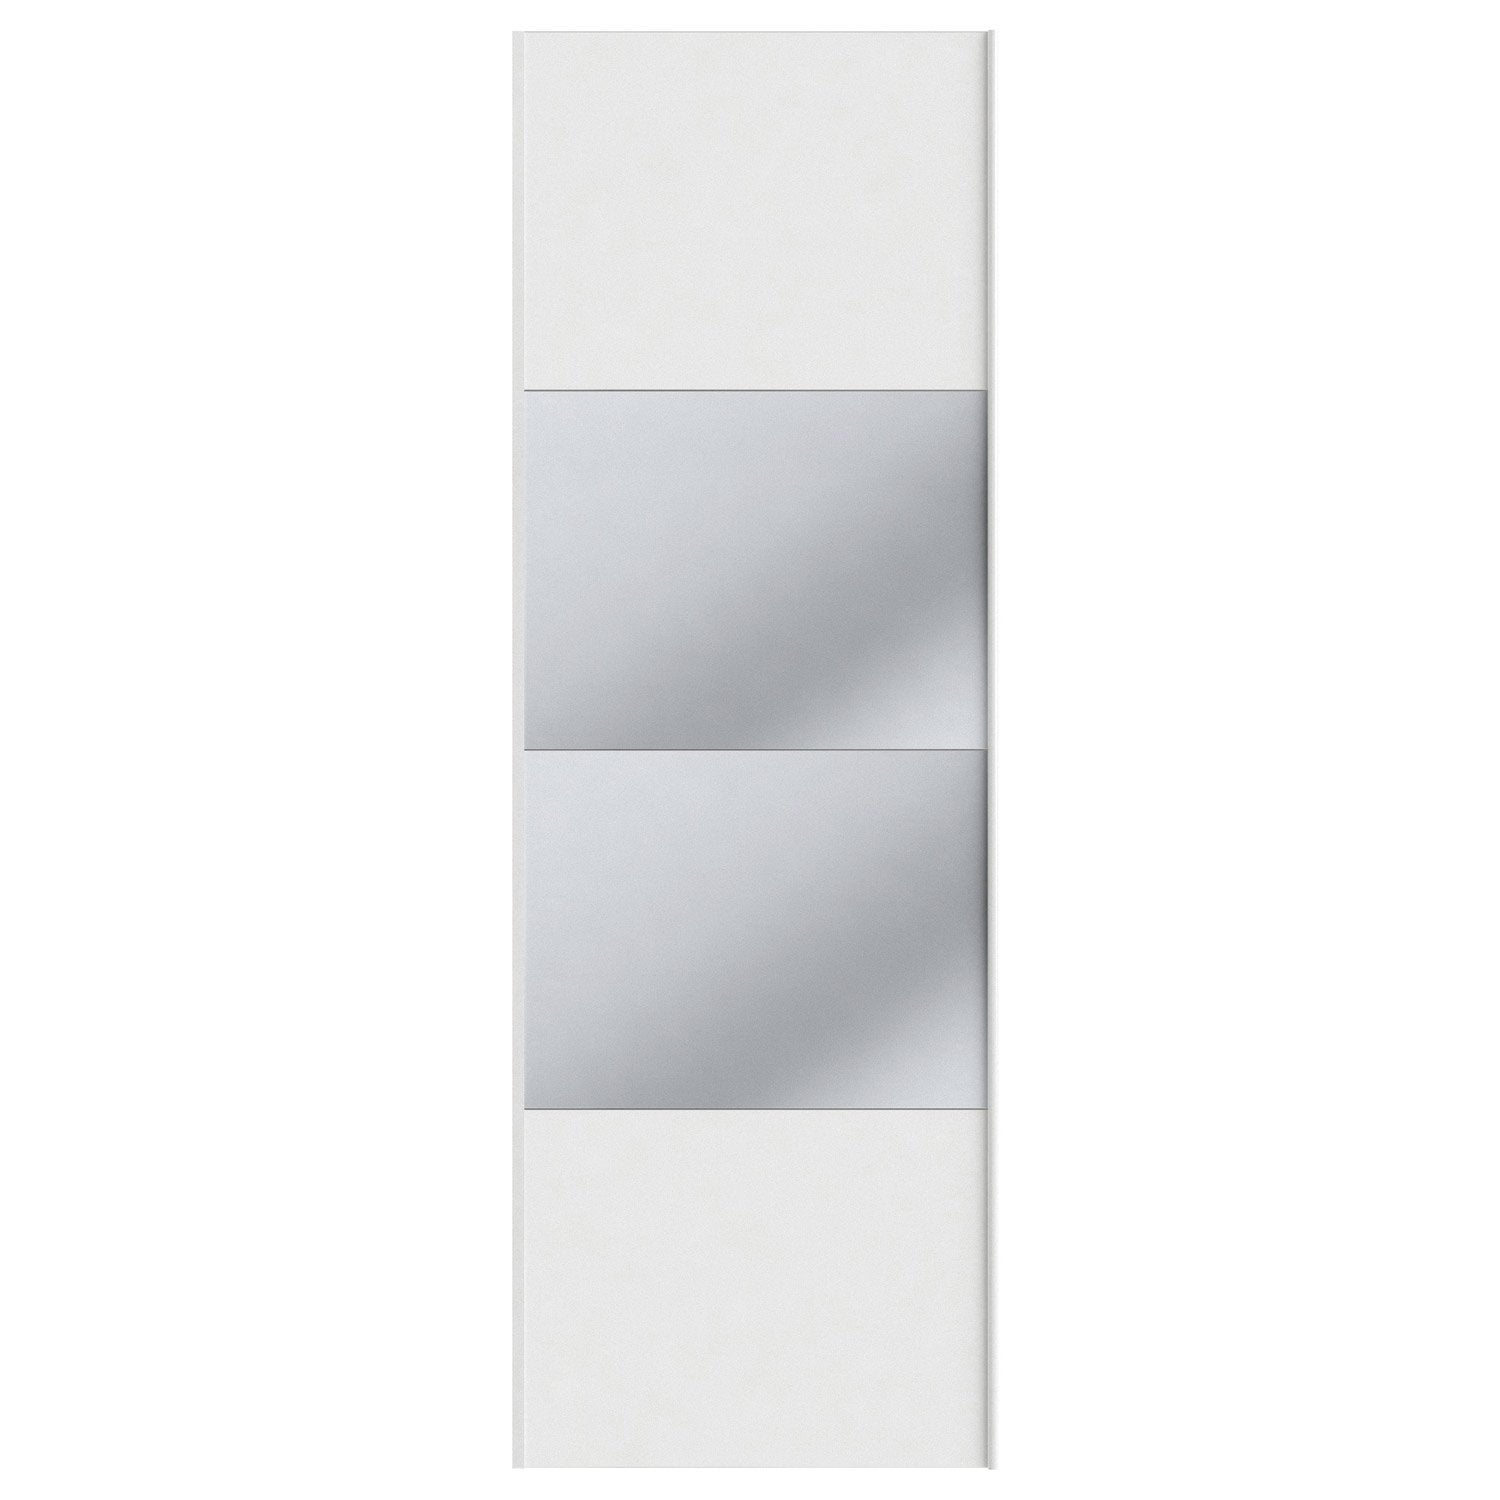 Portes coulissantes spaceo home 240 x 80 x 1 6 cm blanc for Carrelage 80 x 80